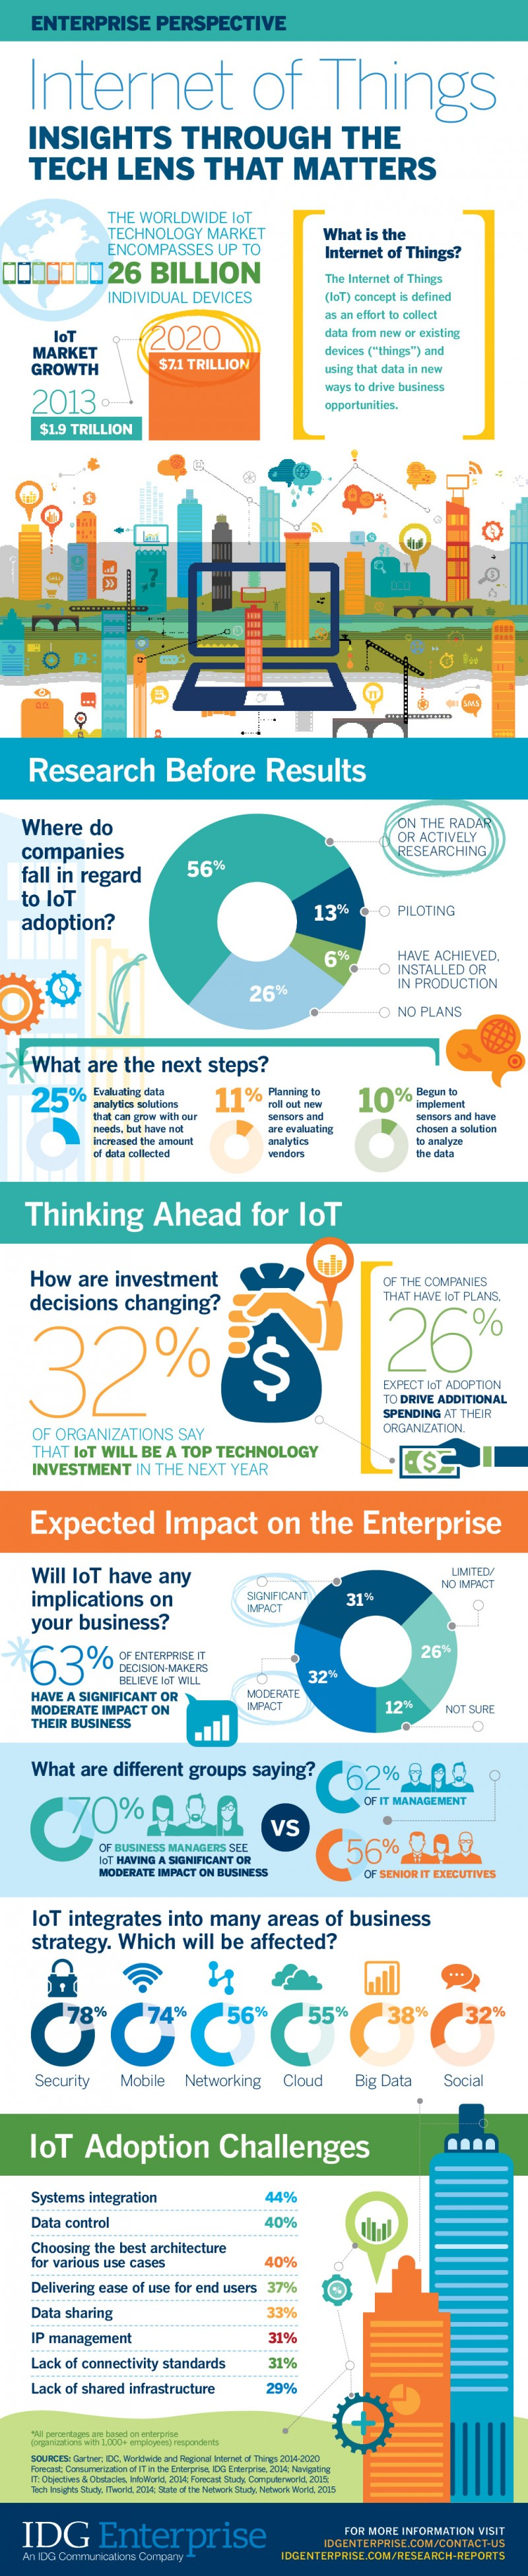 Internet of Things Investment